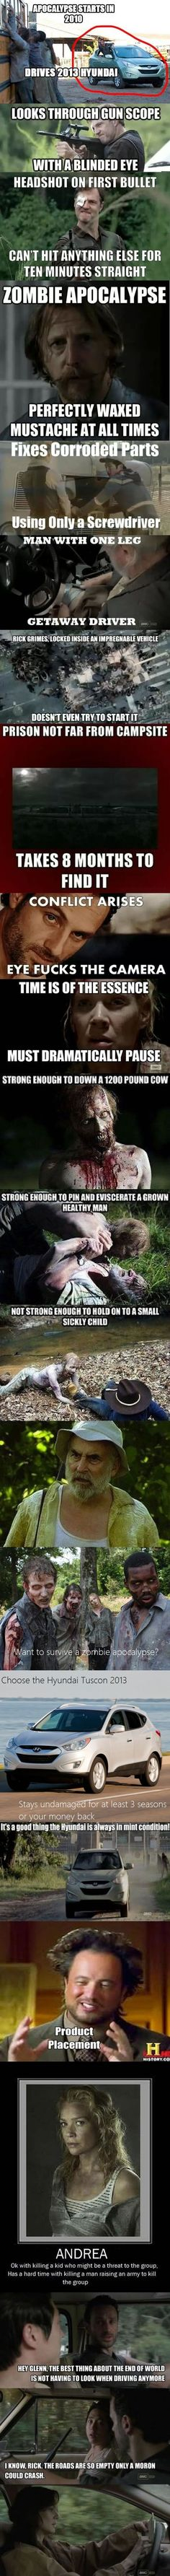 The Most Biting Walking Dead Memes - While I love this show, these are seriously hilarious true! ;] Oh and lets not forget the baby!